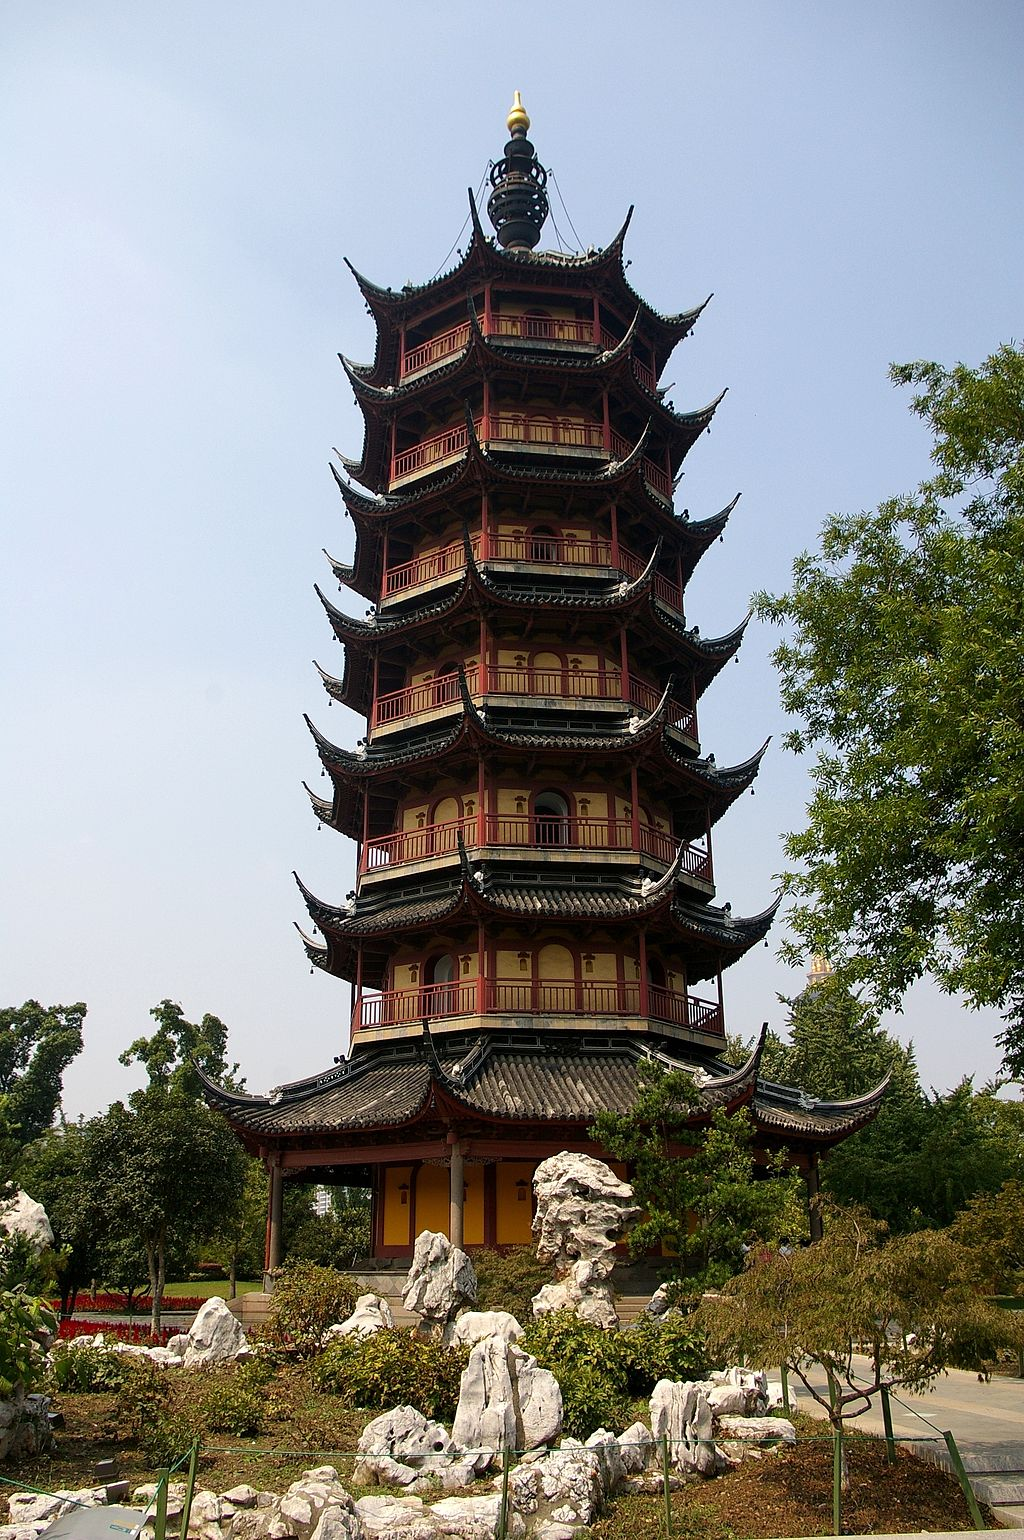 Wenbi Pagoda in Changzou, 10th century, wood, Changzou, China, Photo by Jakub Hałun Creative Commons Attribution License via Wikimedia Commons.